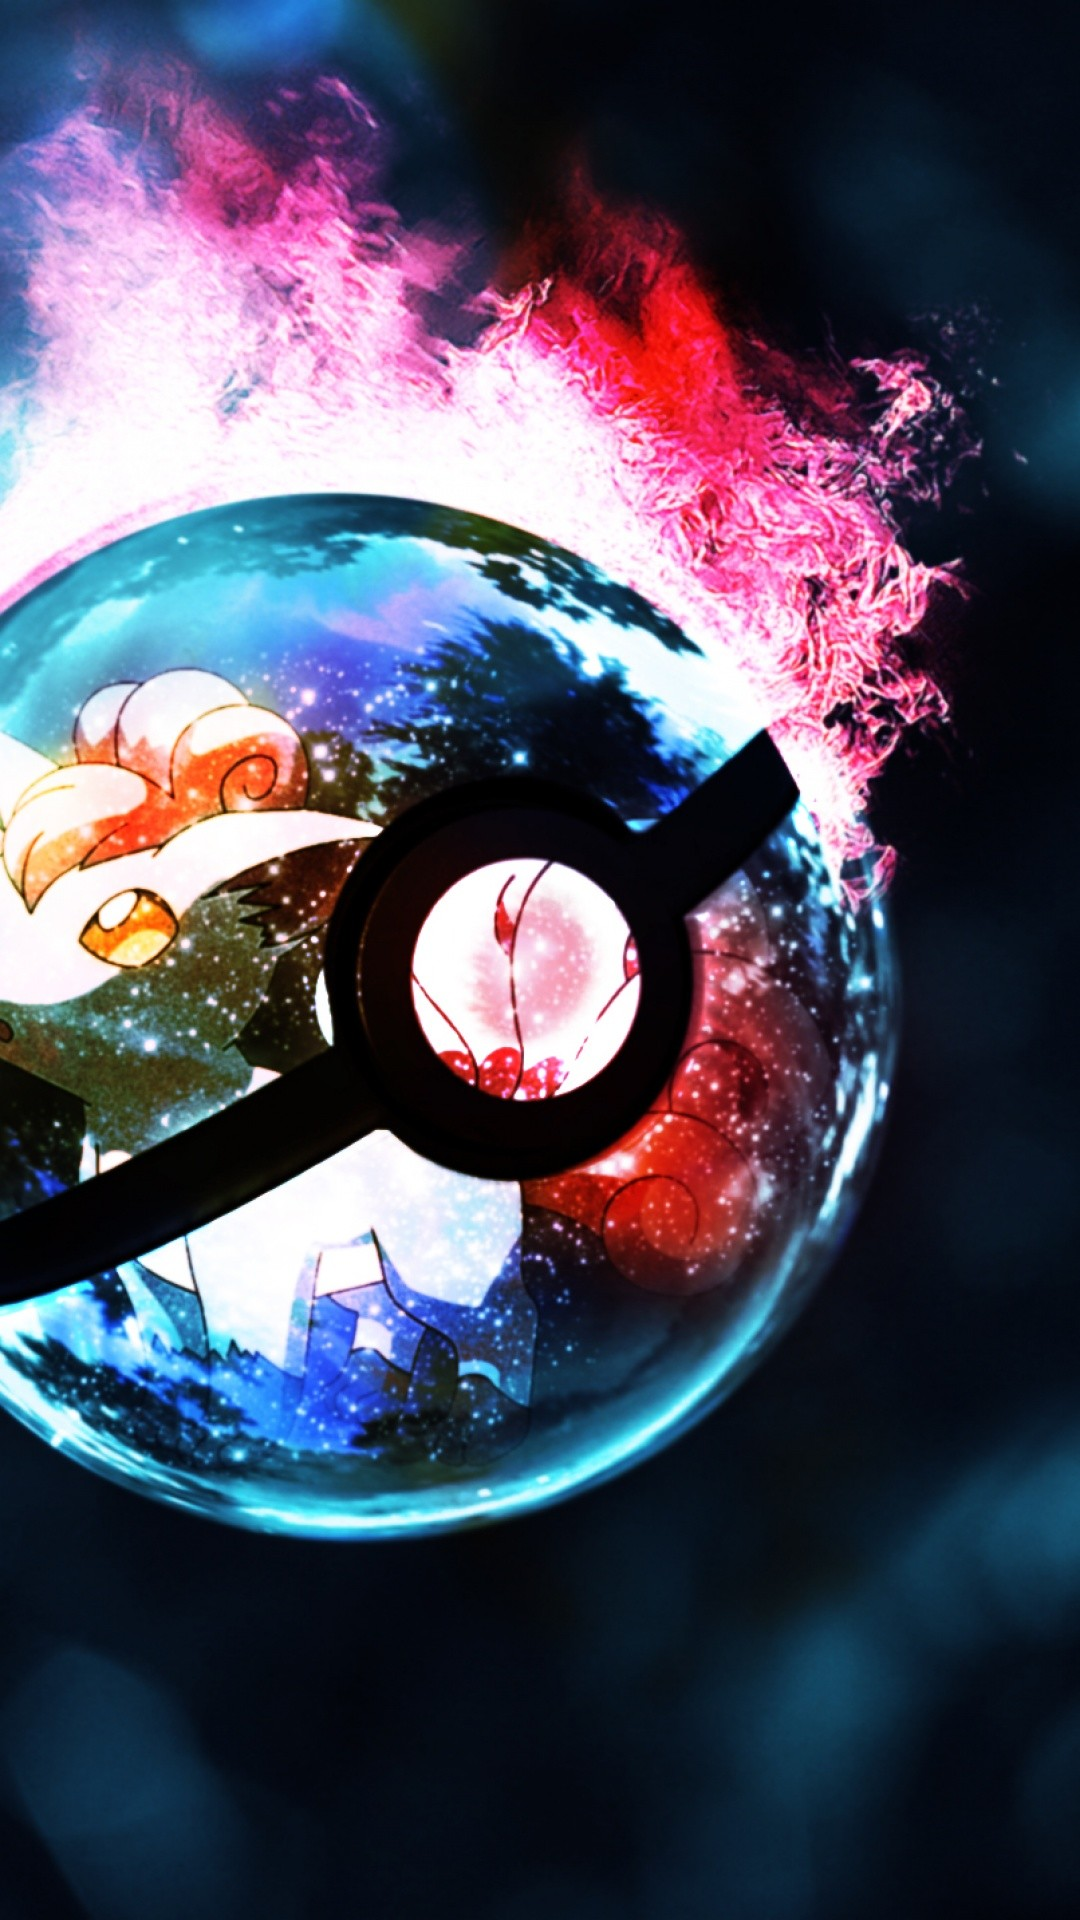 1080x1920 cool-pokemon-go-mobile-wallpapers-pokeball-fire-hd-